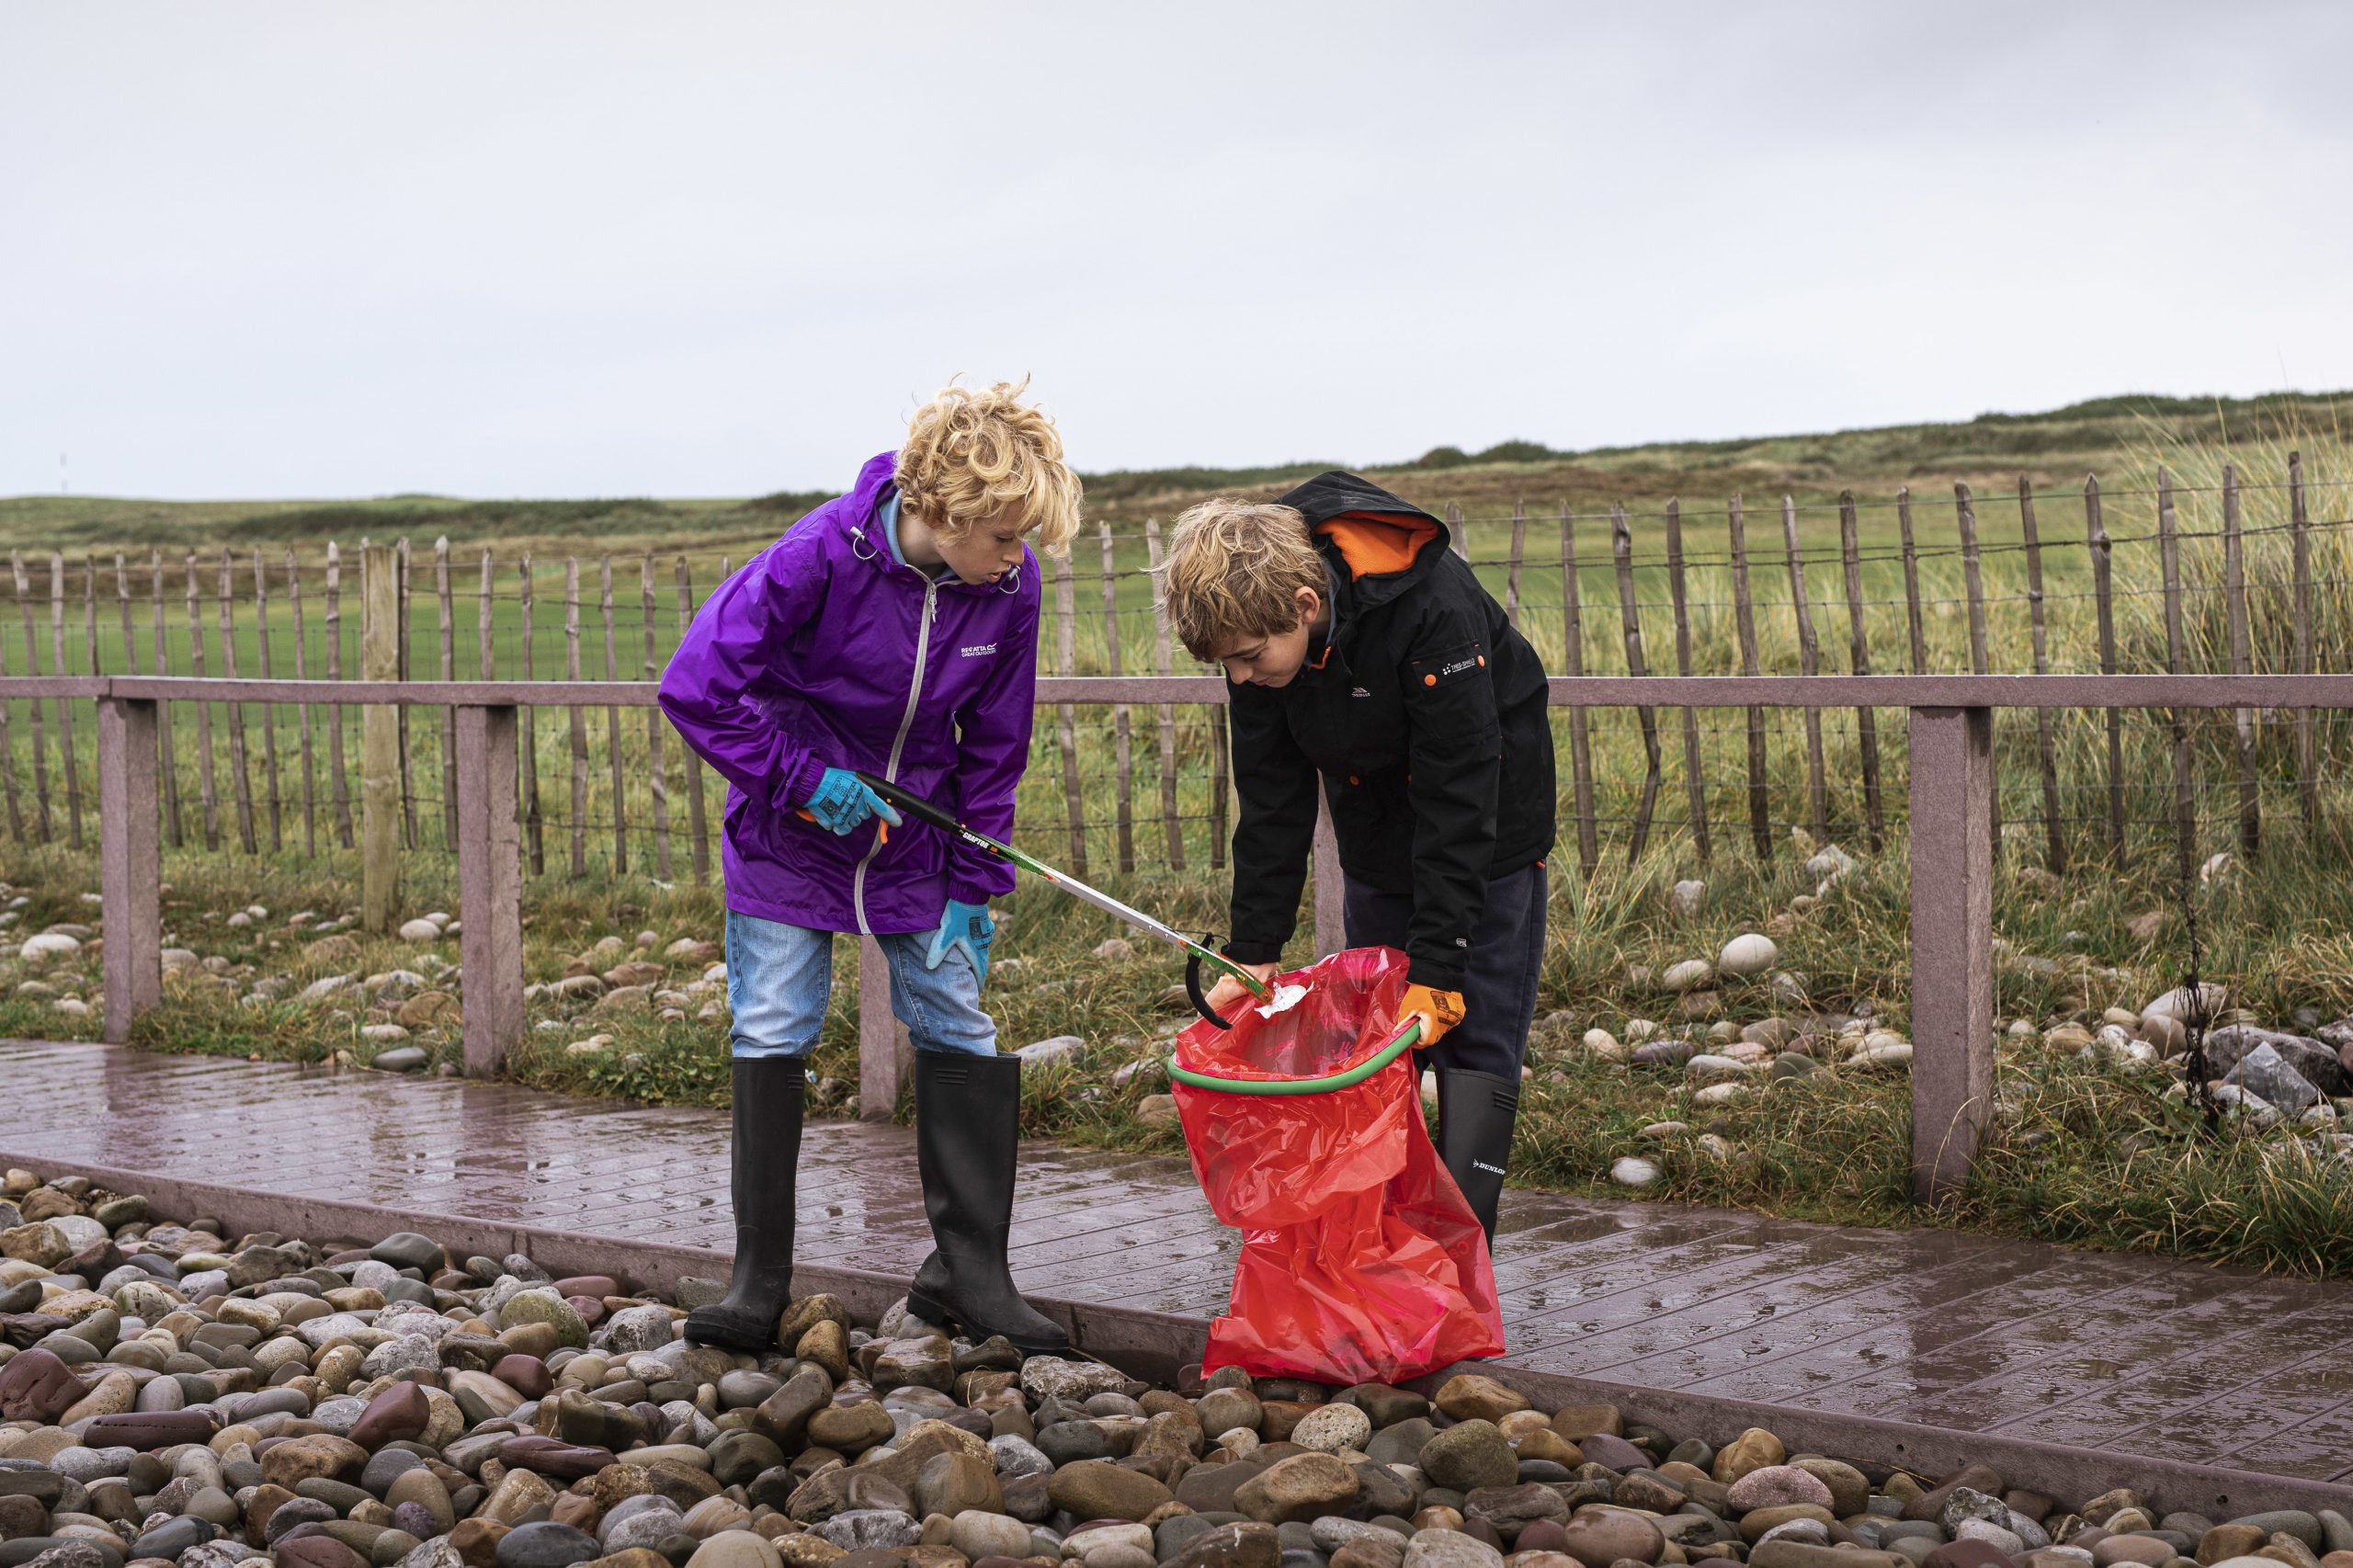 Keep Wales Tidy has launched Caru Cymru to eradicate litter and waste across Wales